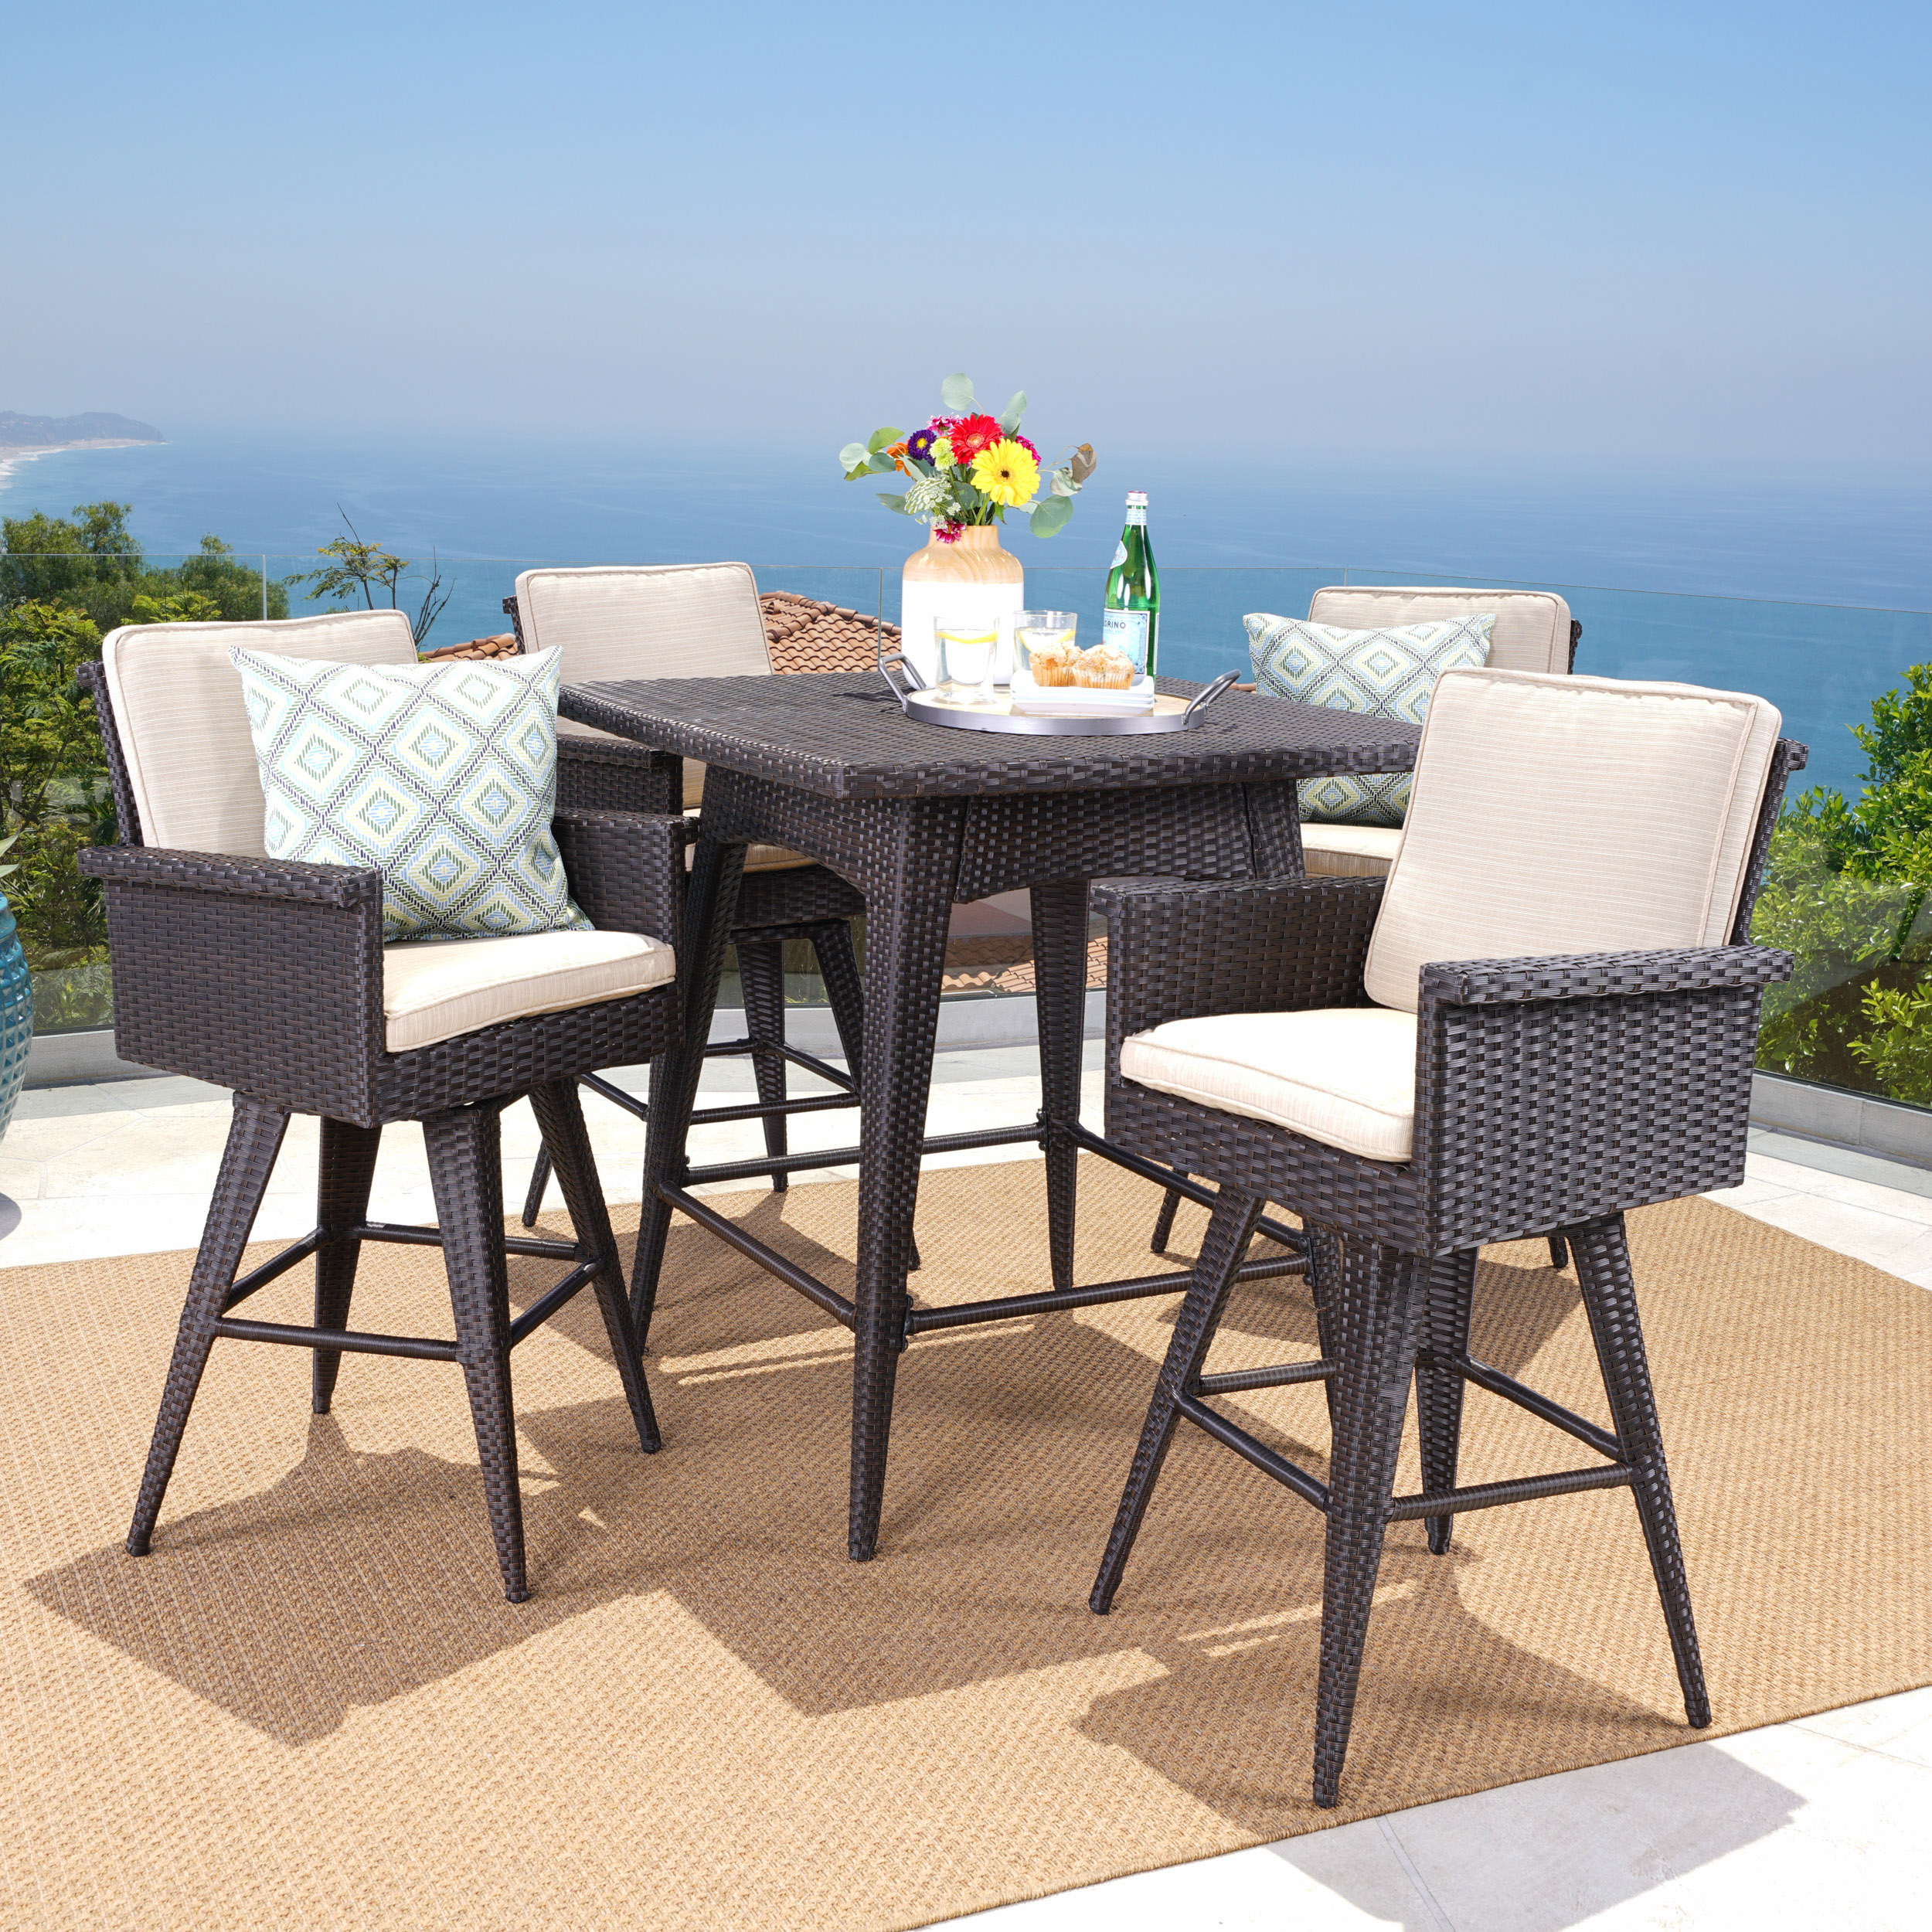 Marianne Outdoor 5 Piece Wicker Bar Height Dining Set with Sunbrella Cushions, Dark Brown, Sand